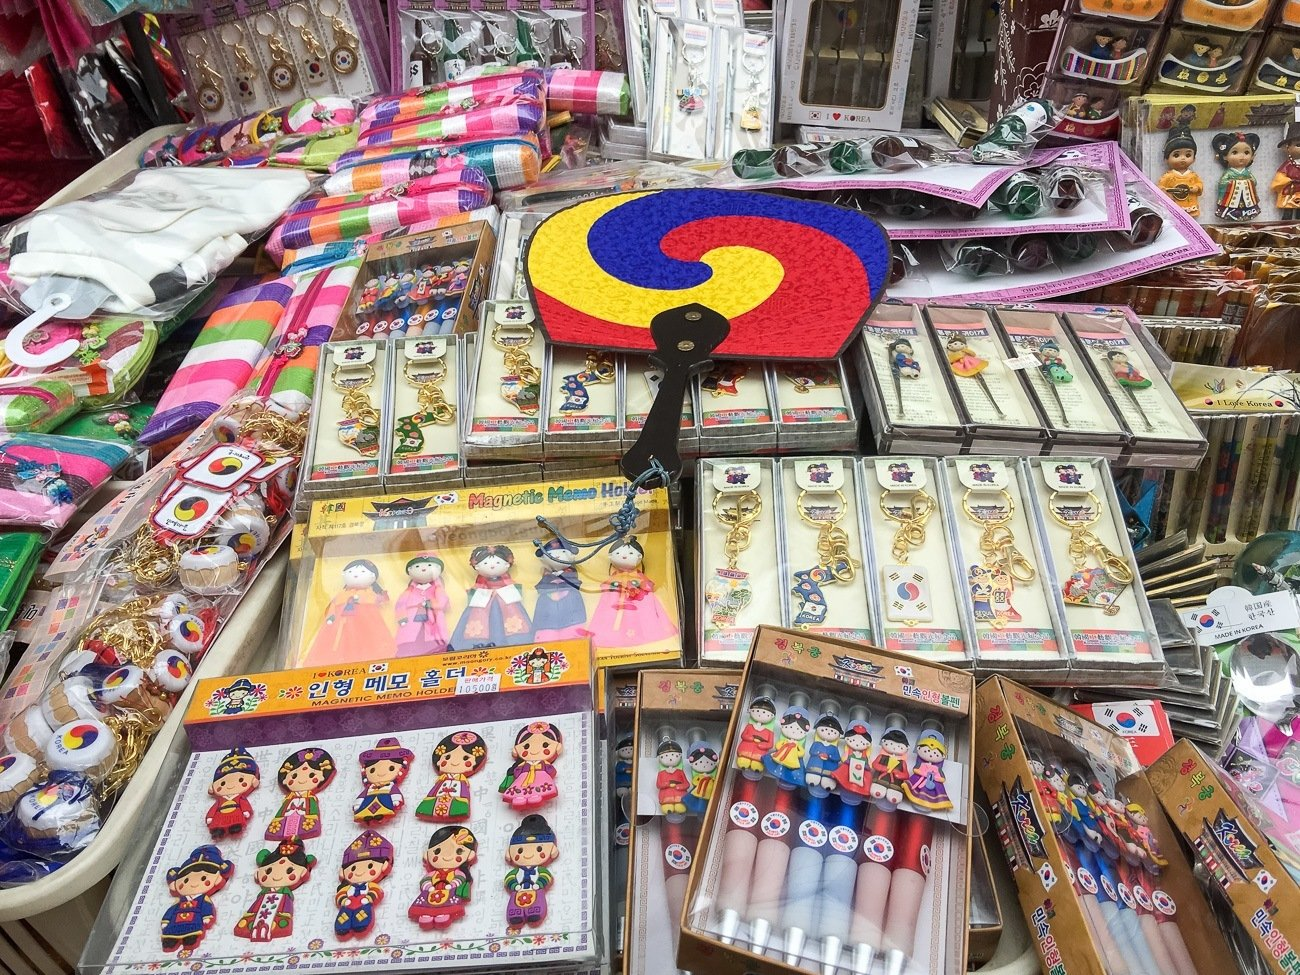 Buy souvenirs at Namdaemun Market in Myeongdong, Seoul's famous shopping district.